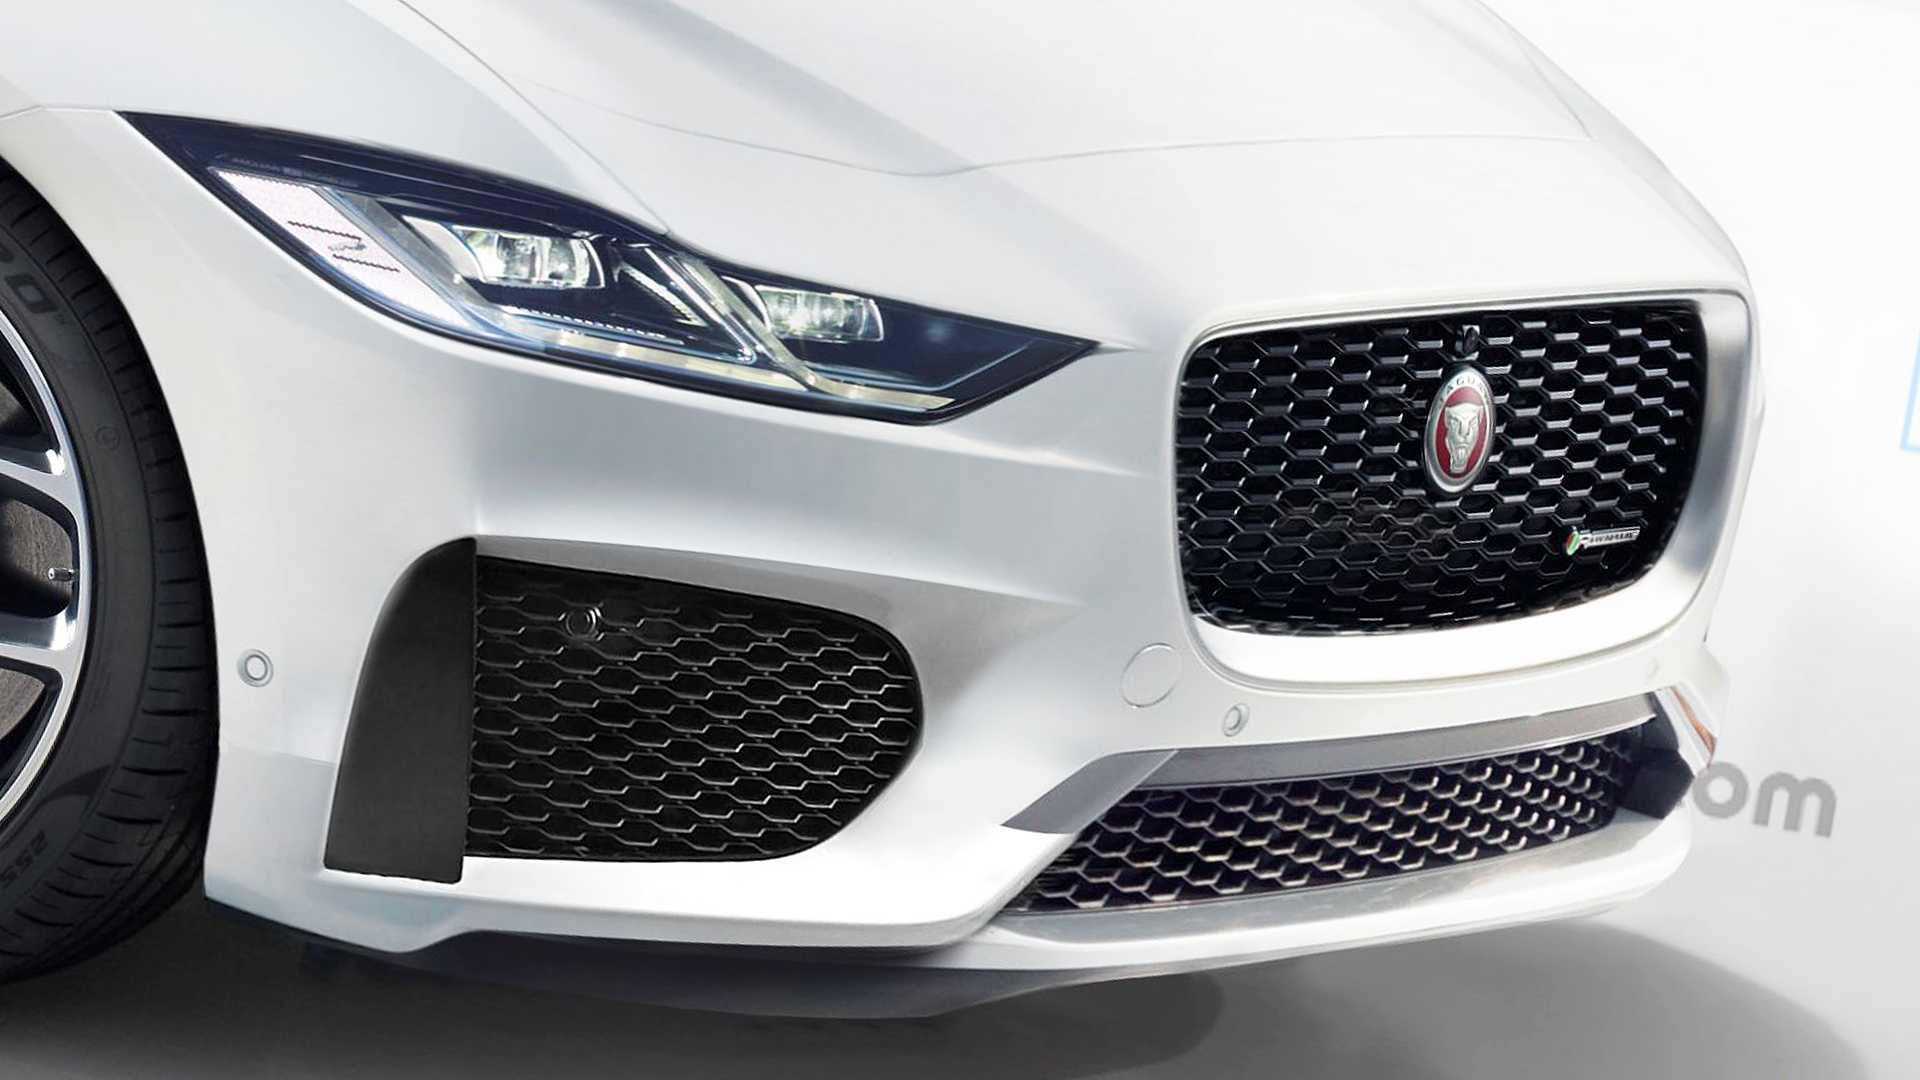 64 All New 2020 Jaguar Xj Release Date Exterior and Interior